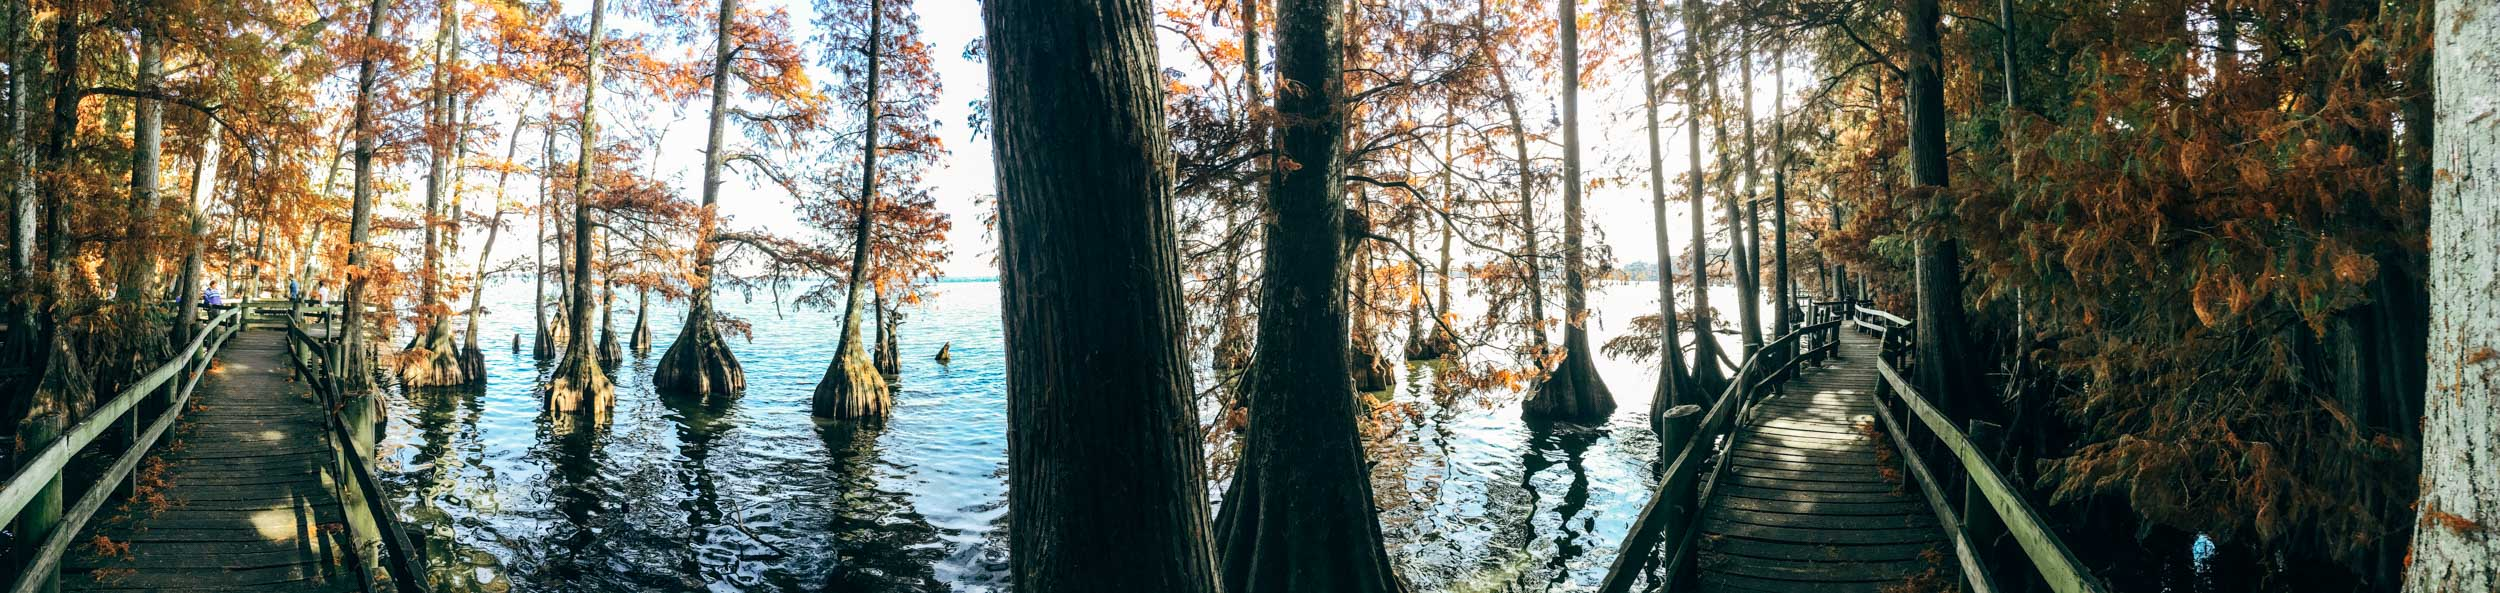 Reelfoot Lake two hours north of Memphis in Tiptonville, Tennessee